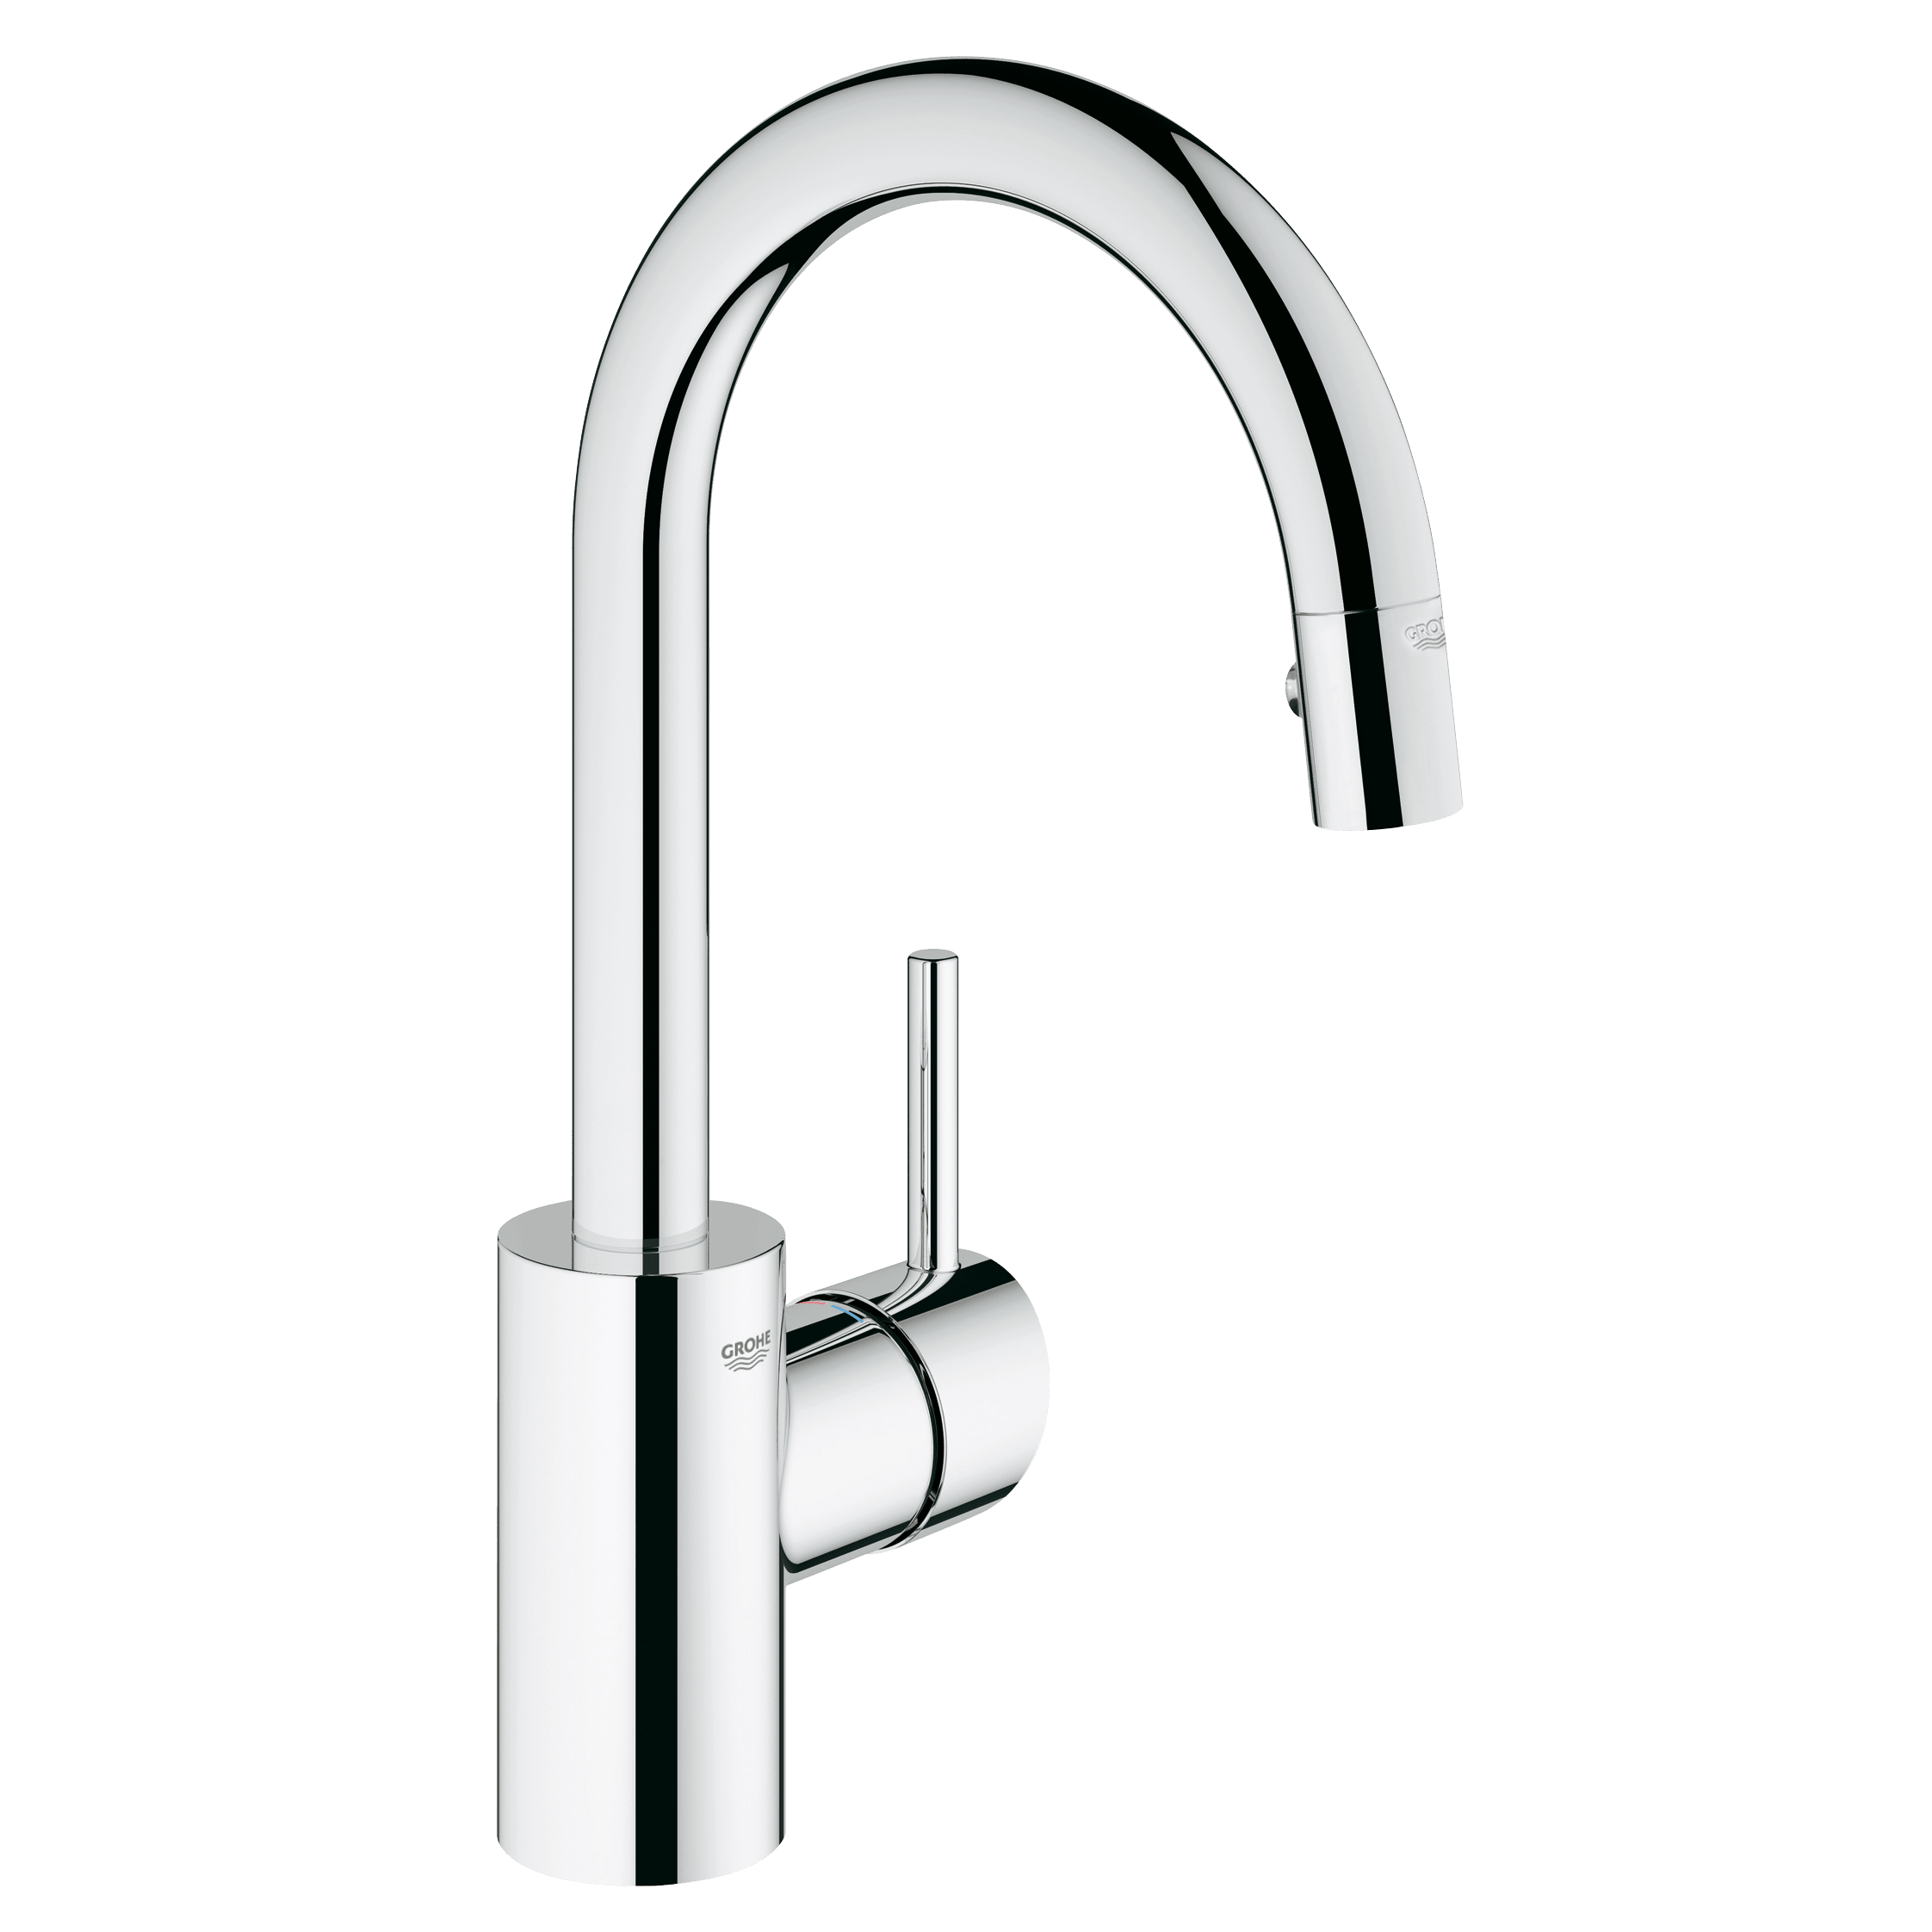 faucet linwood com a faucets amazon noise downstairs barclay dp books